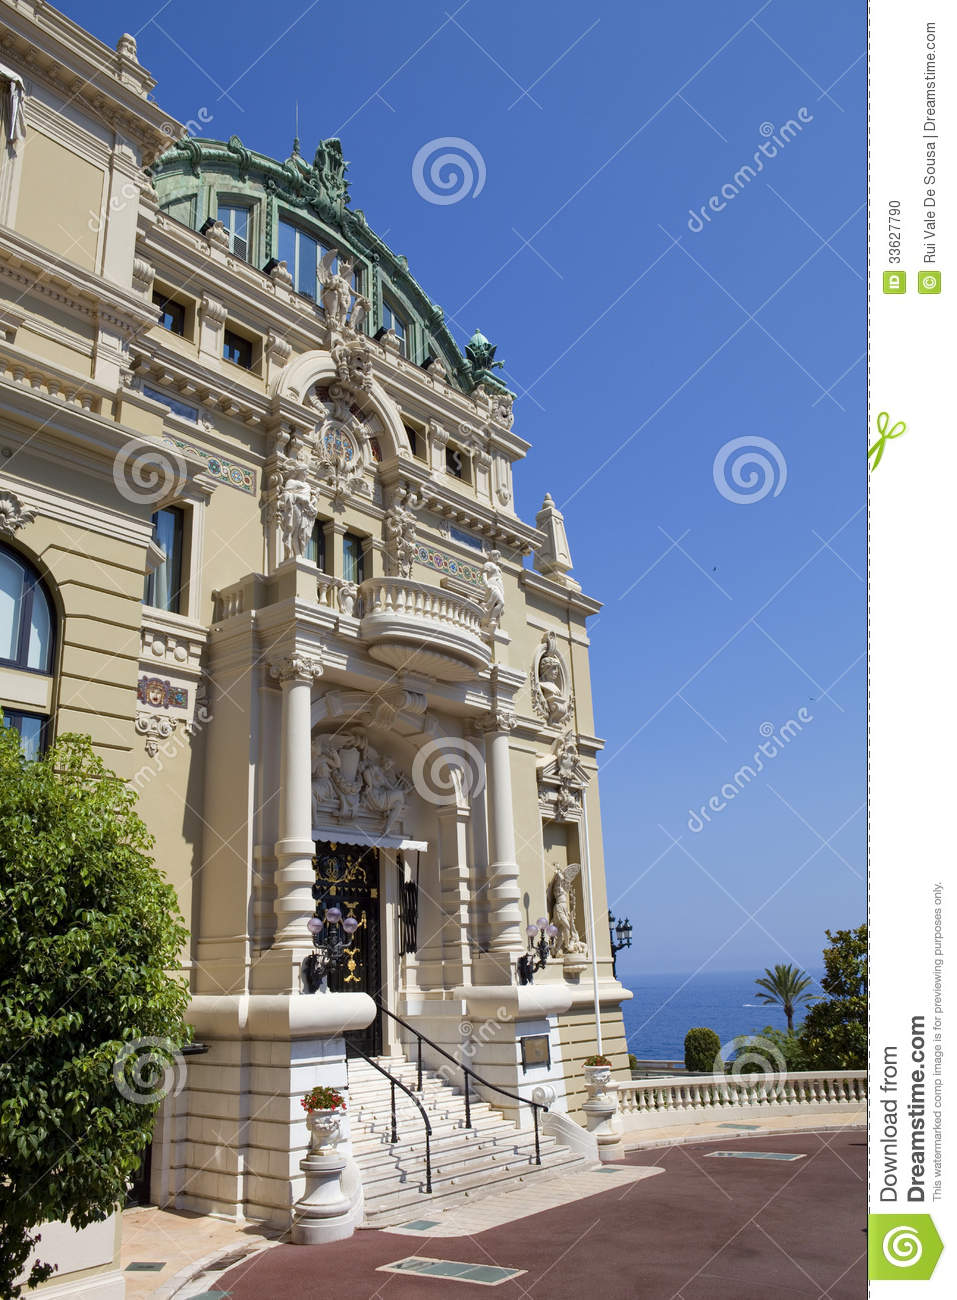 monte carlo casino monaco entrance fee